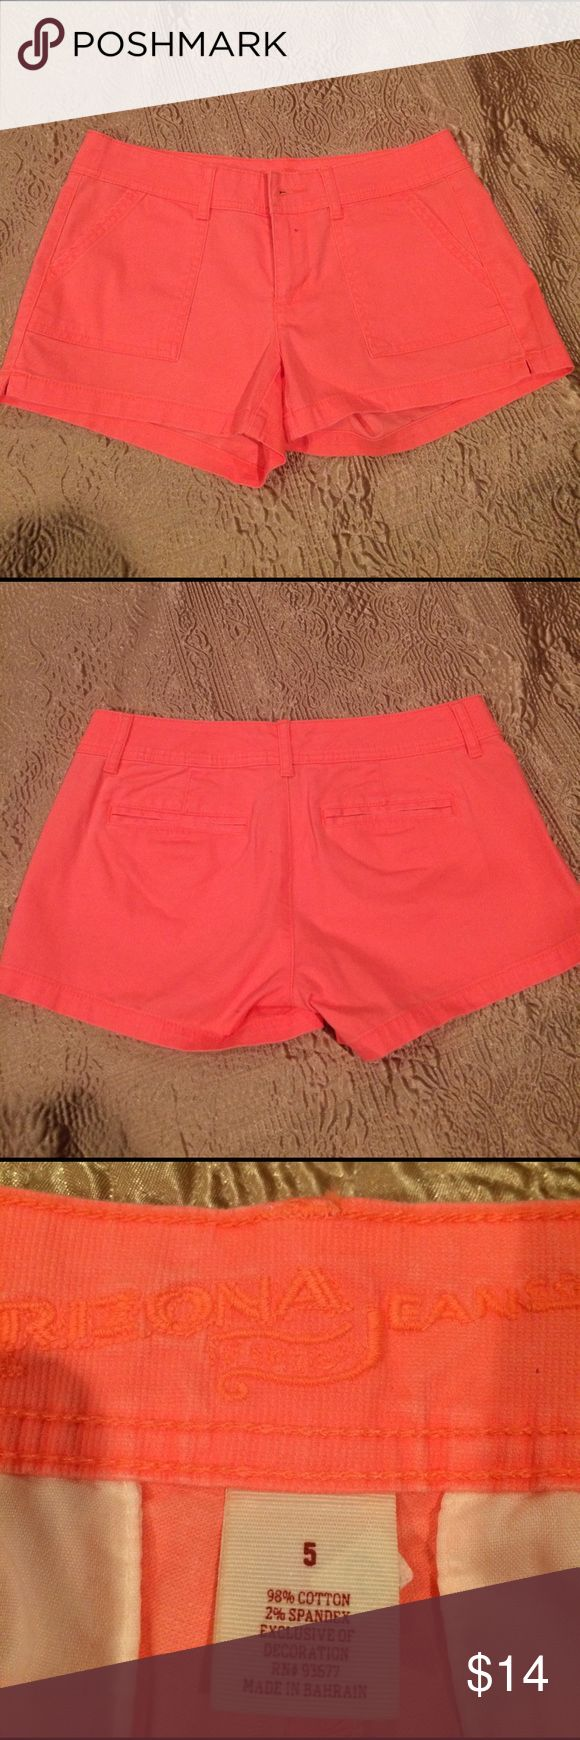 😃 peach shorts Peach cotton shorts. Excellent condition. Arizona Jean Company Shorts Jean Shorts